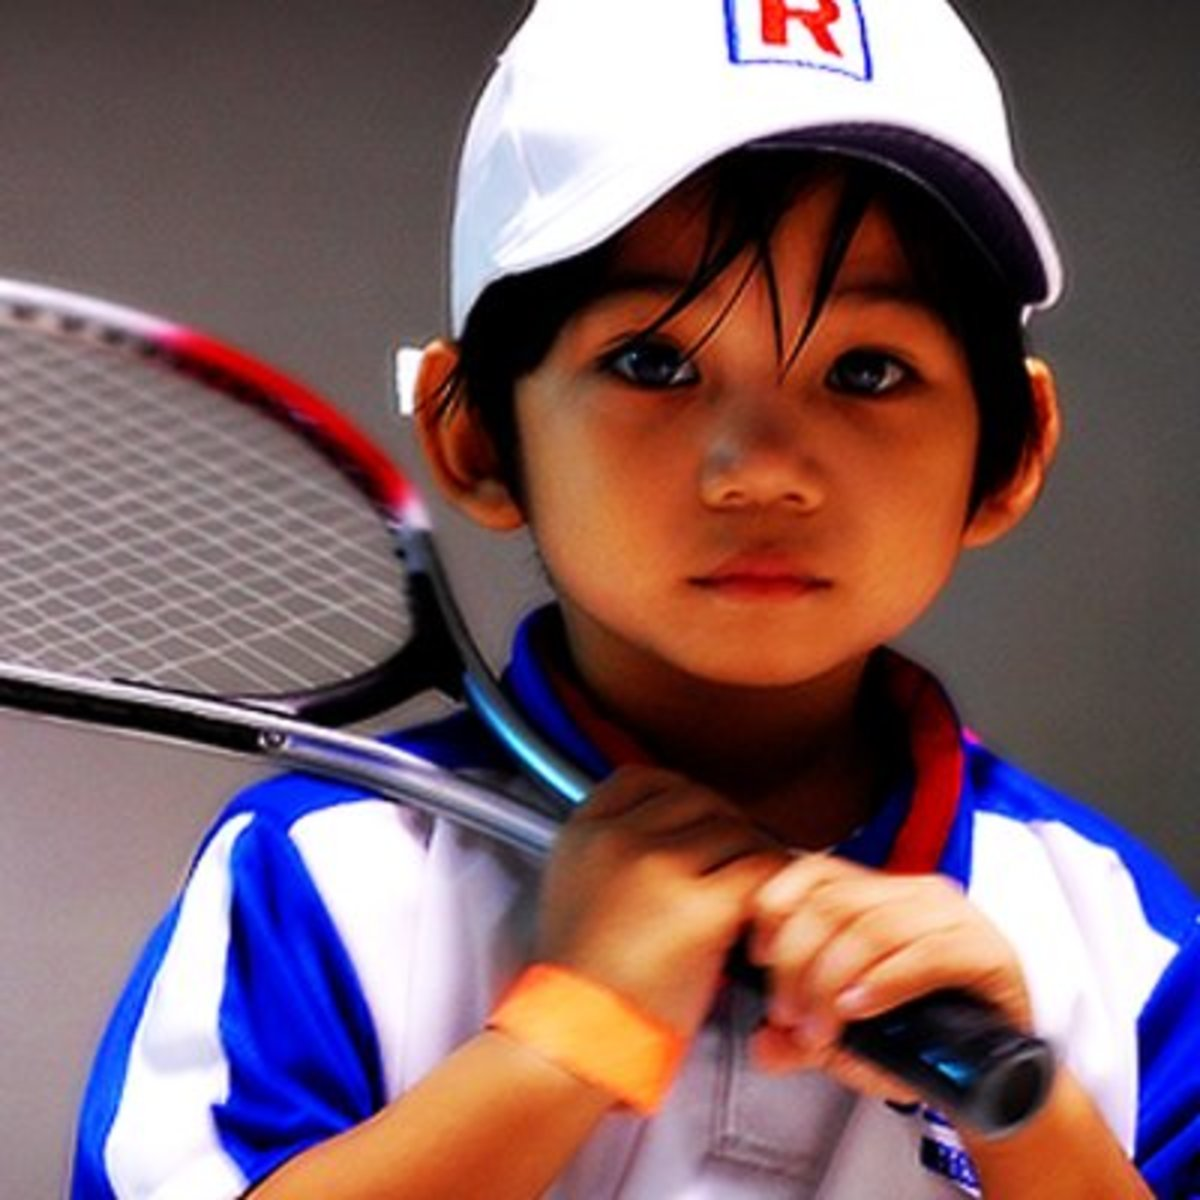 A tennis racket accessory really completes the look of this Ryoma Echizen costume.